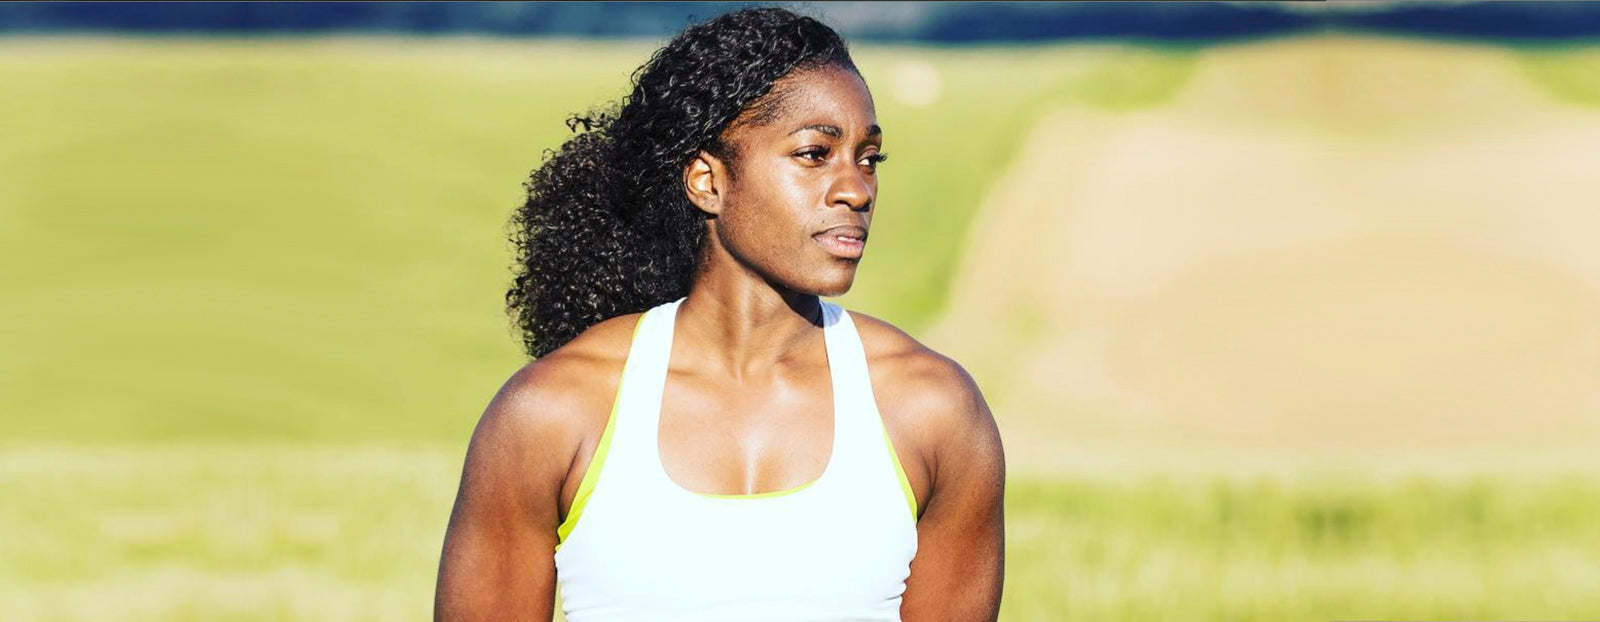 Tiffeny Parker: USA Heptathlete, Bobsled 2022 Olympic Hopeful and Speed Coach